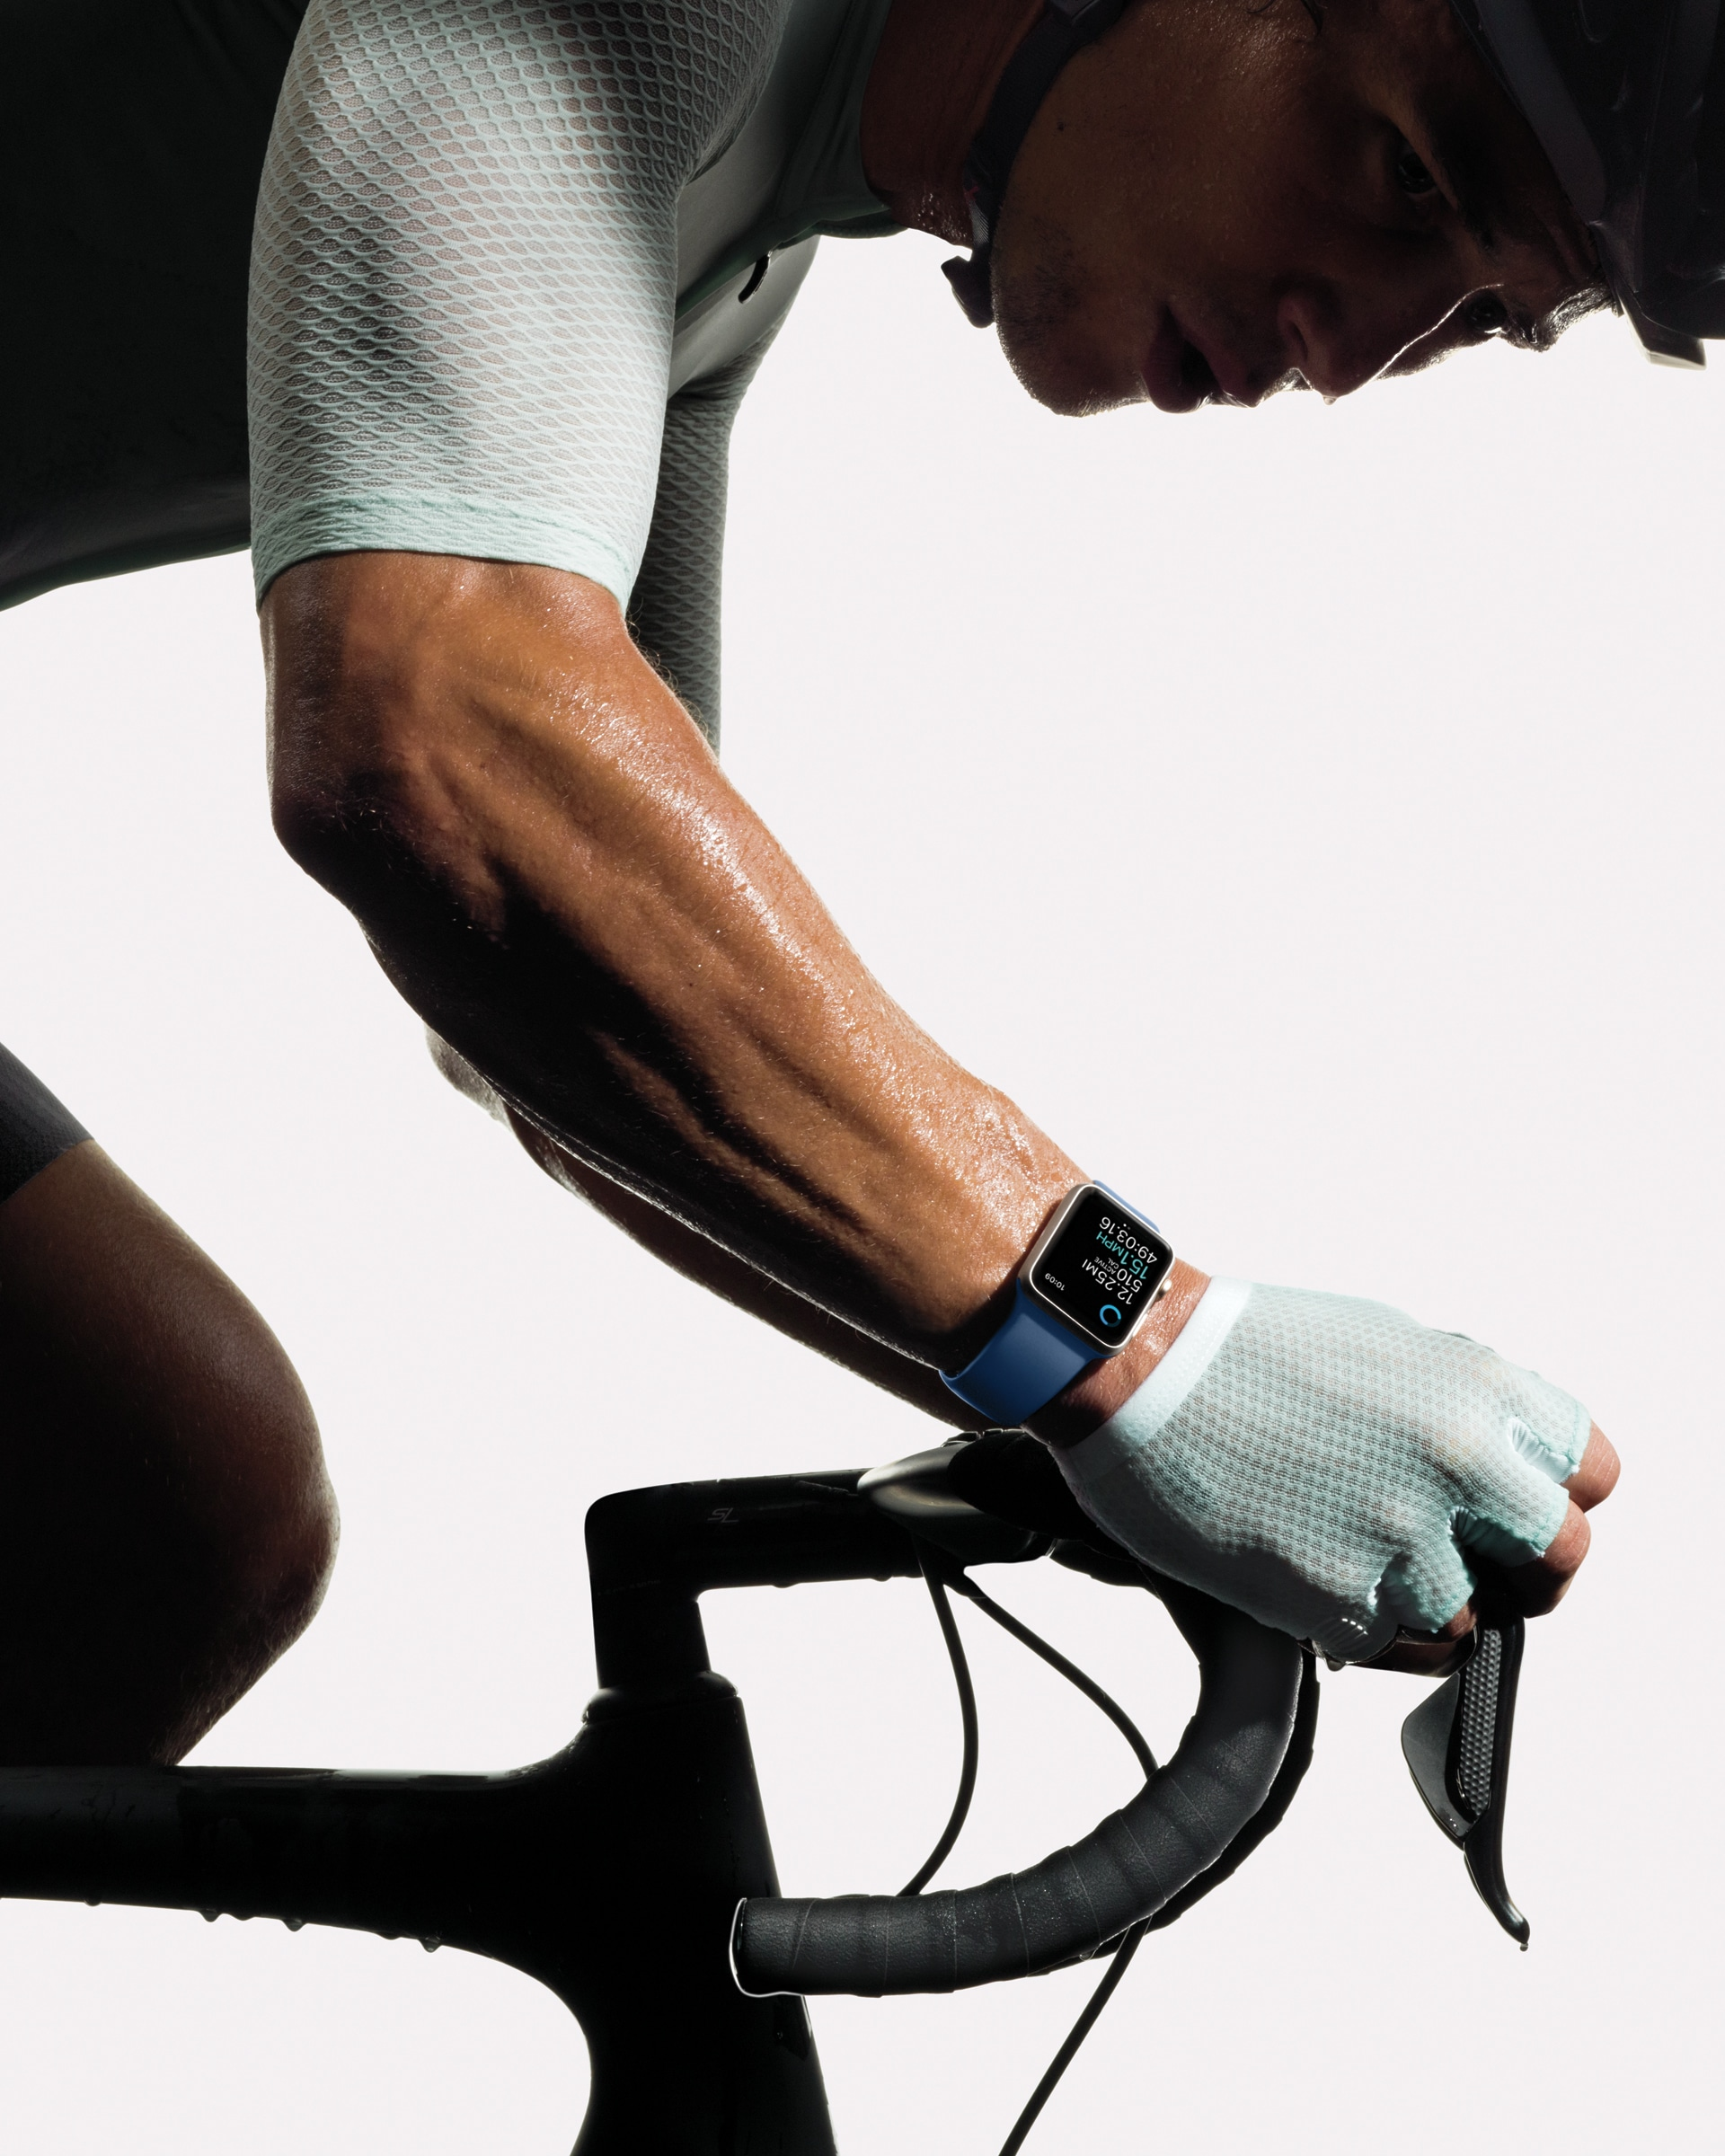 Apple Watch Series 2 sendo usado em bicicleta